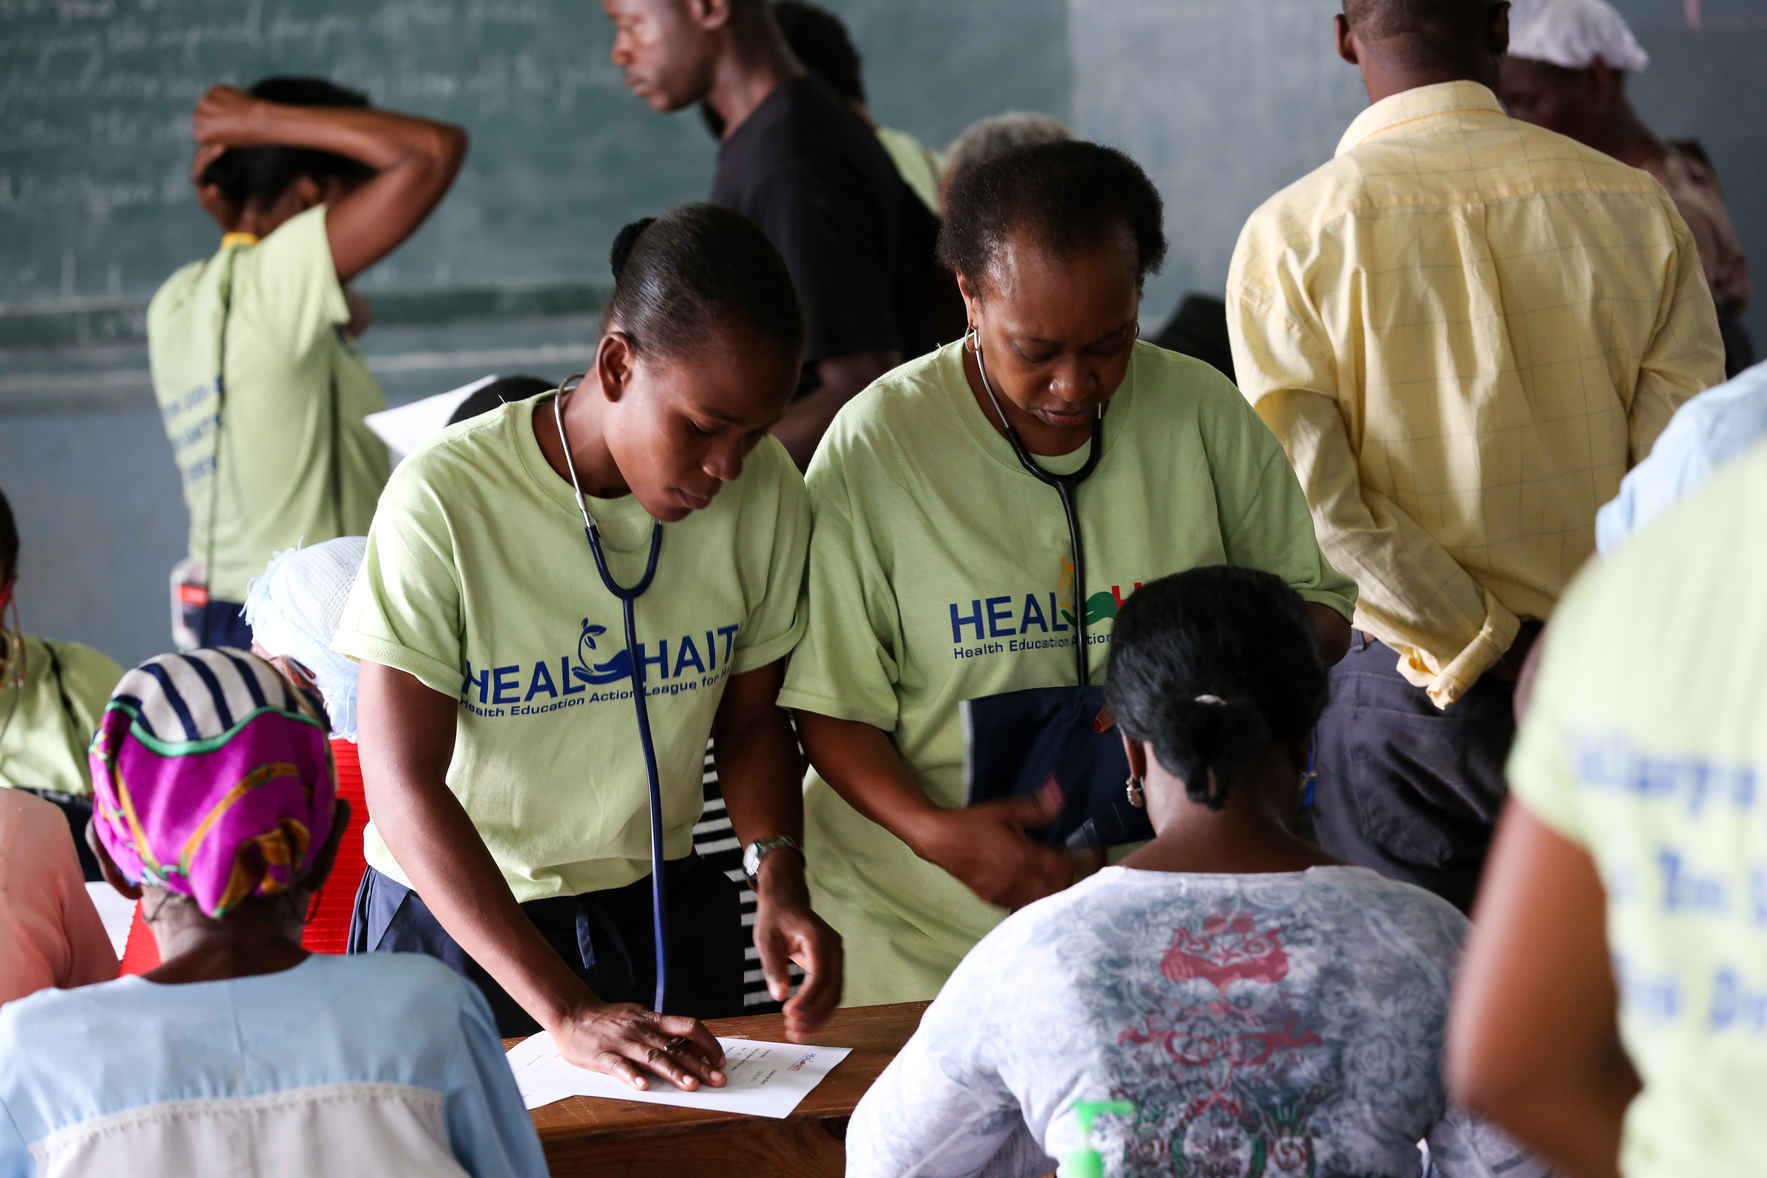 #GivingTuesday - Donate now to HEAL Haiti  image